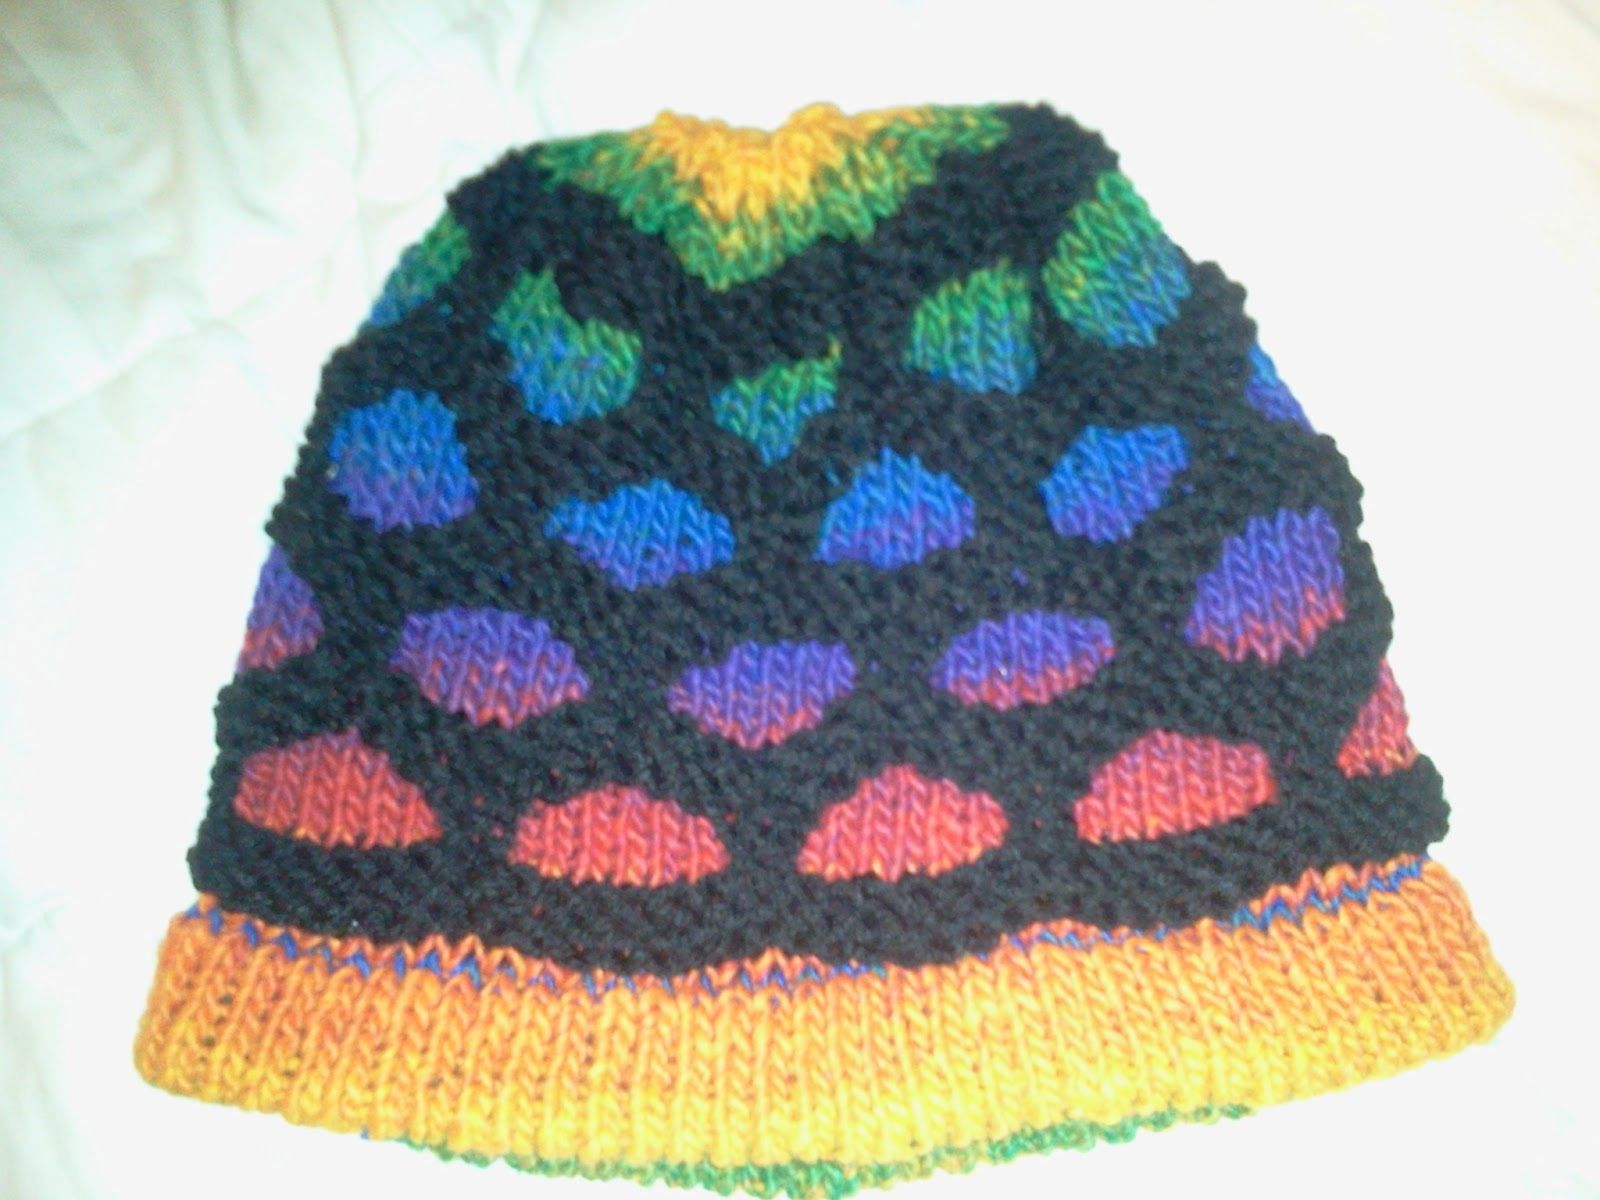 Rainbow loom hats wow that is a lot of rubber bands rainbow loom hats wow that is a lot of rubber bands loom knitting patternsknitting dt1010fo